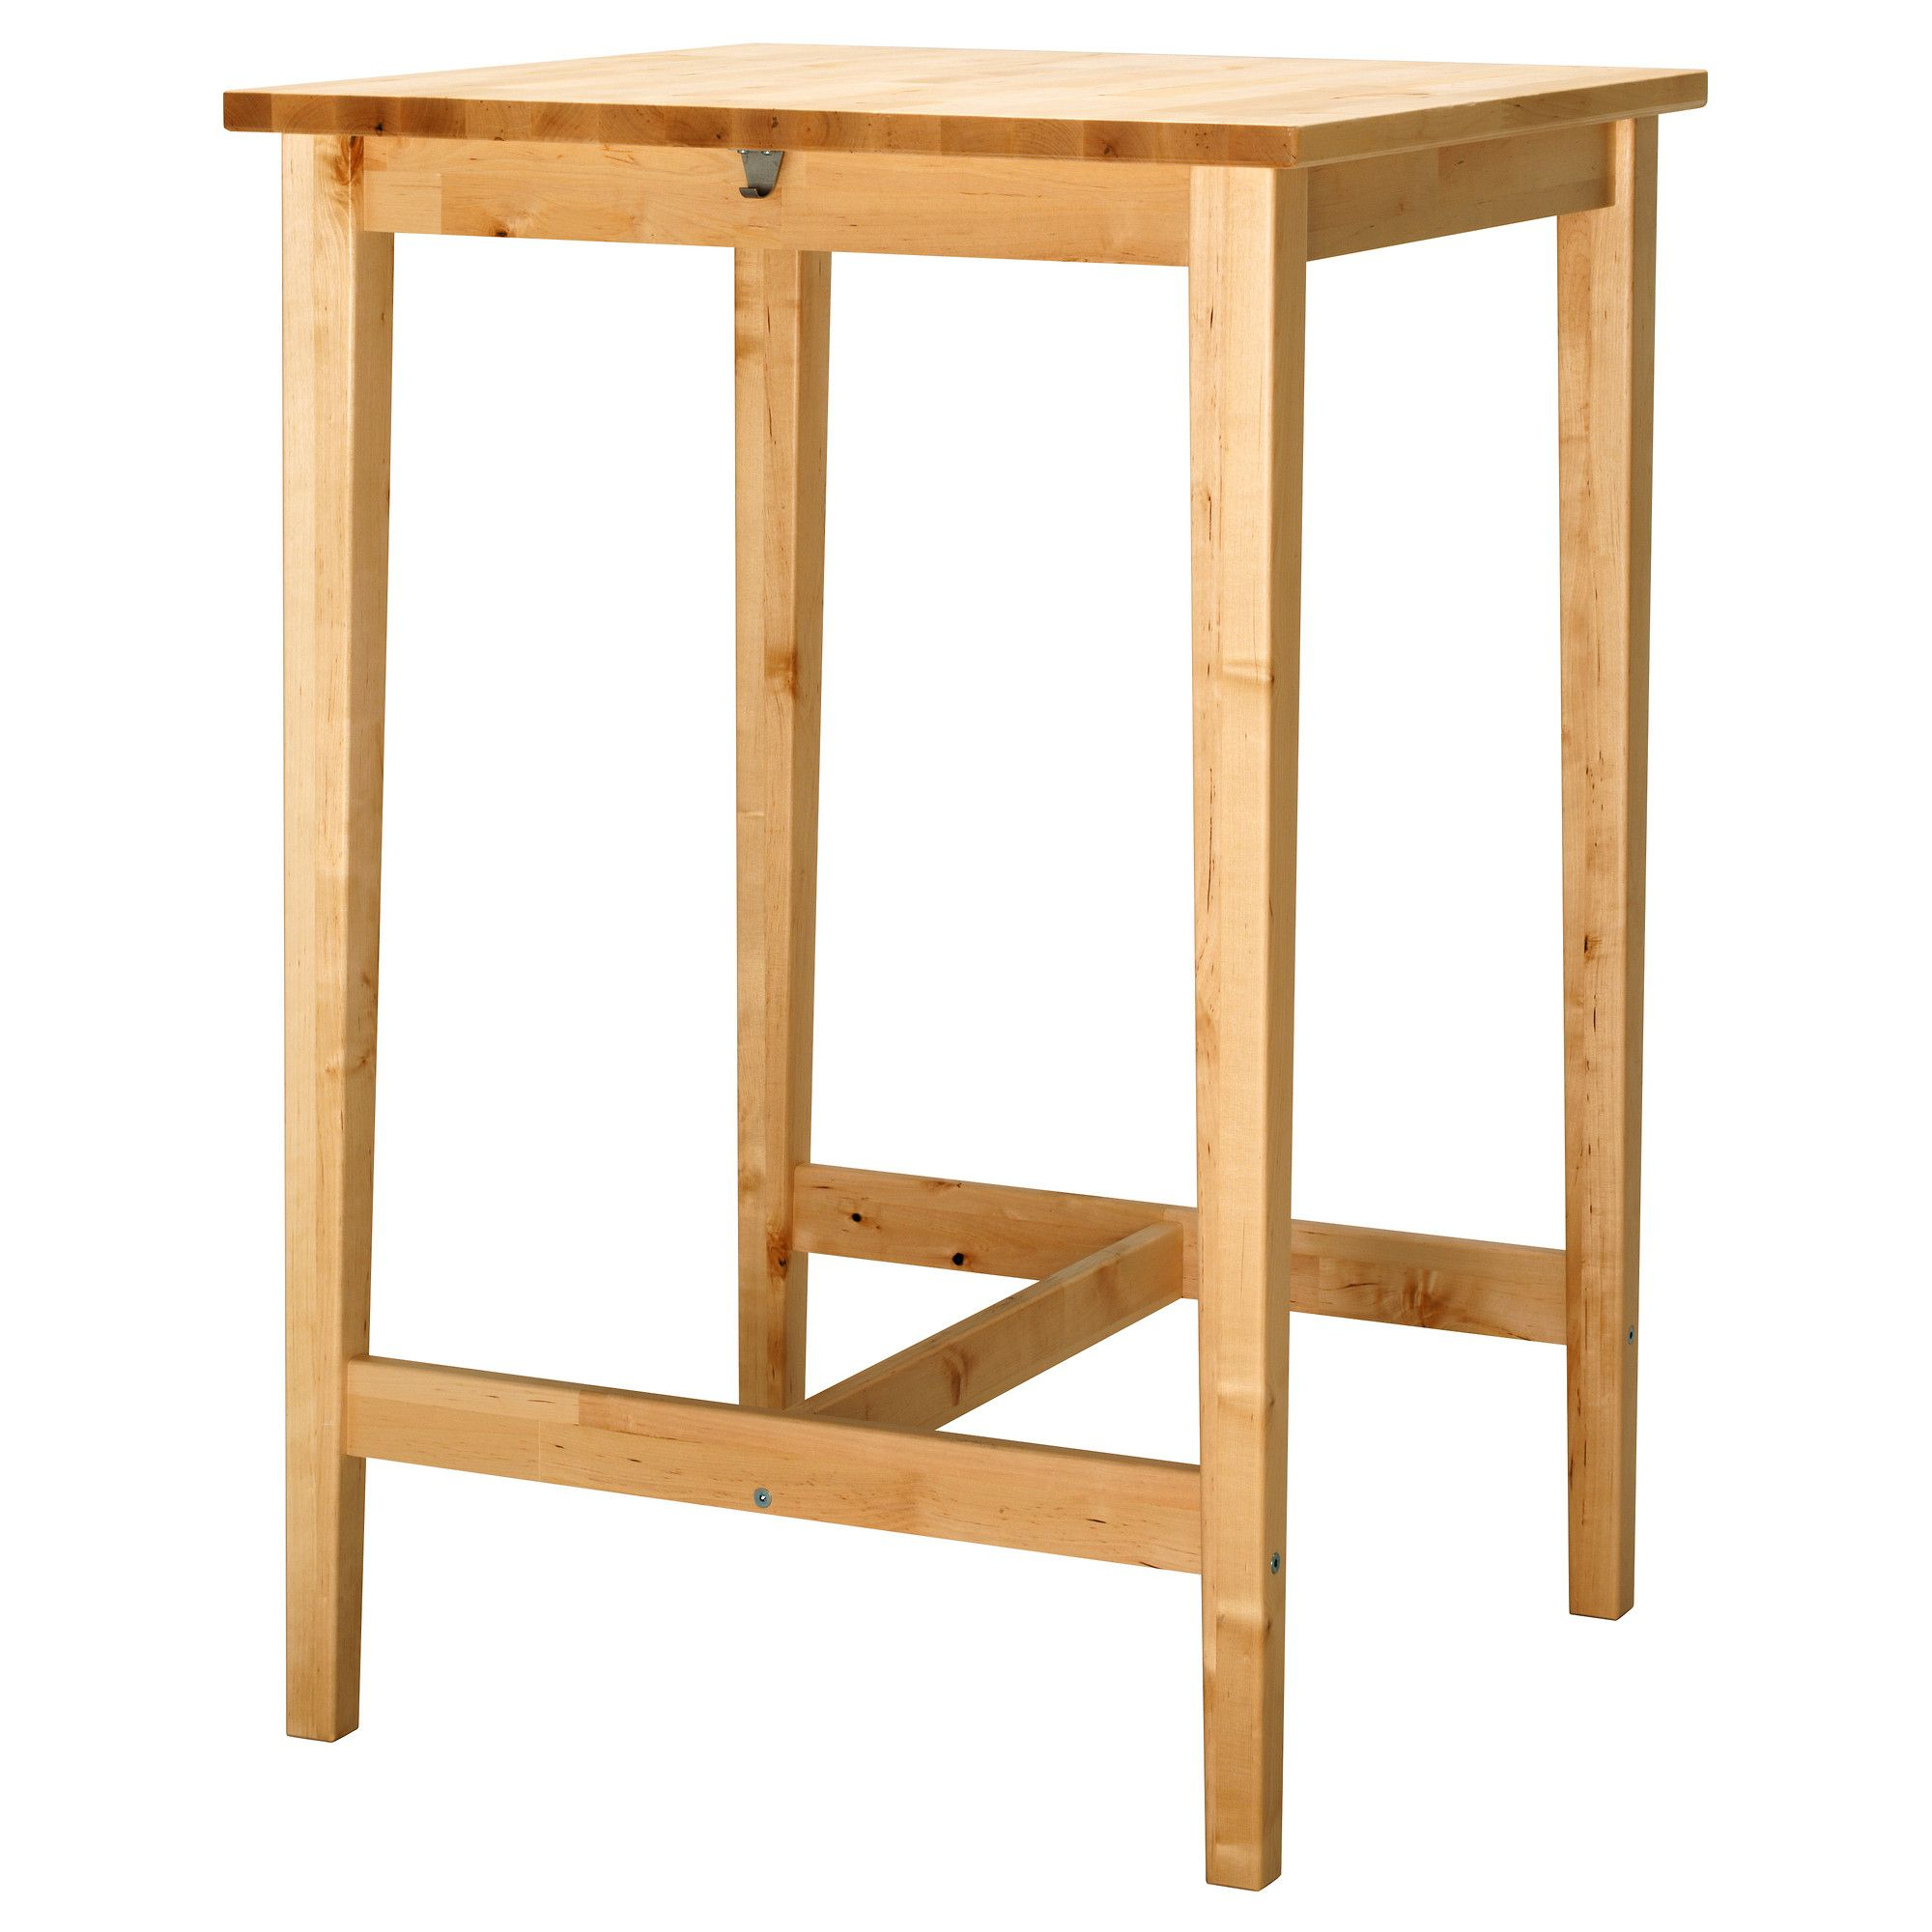 Delightful Table Haute Bois Ikea #9: BJÖRKUDDEN Bar Table - IKEA - Three Of These Would Fit Against The Wall To  Create